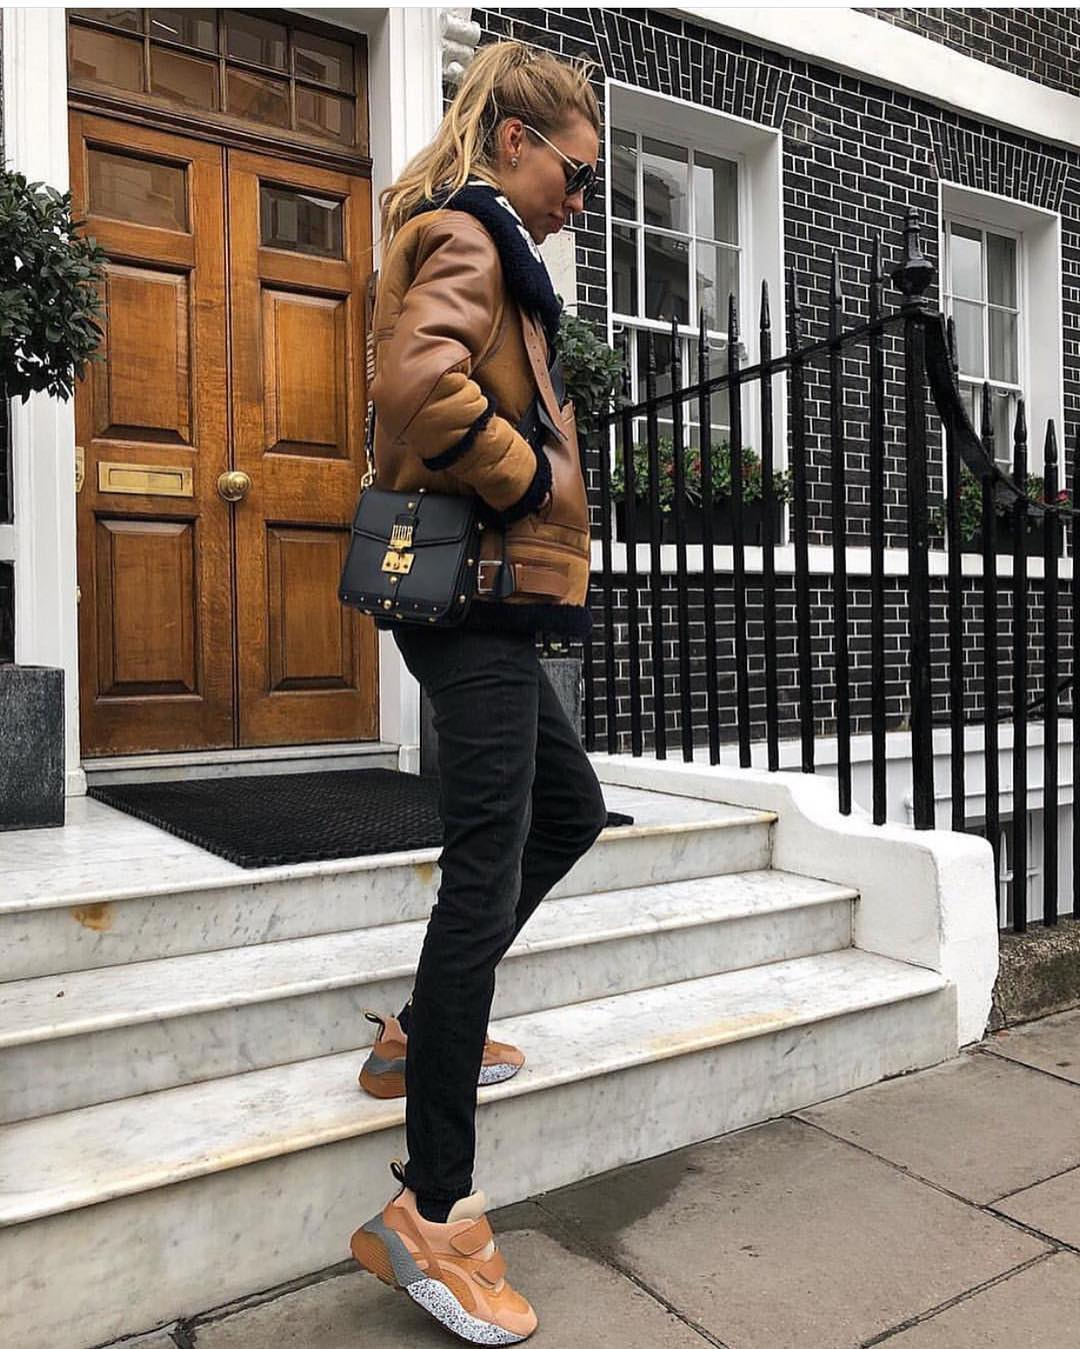 Brown Leather Aviator Jacket And Black Skinny Jeans With Pastel Orange Sneakers For Fall 2019